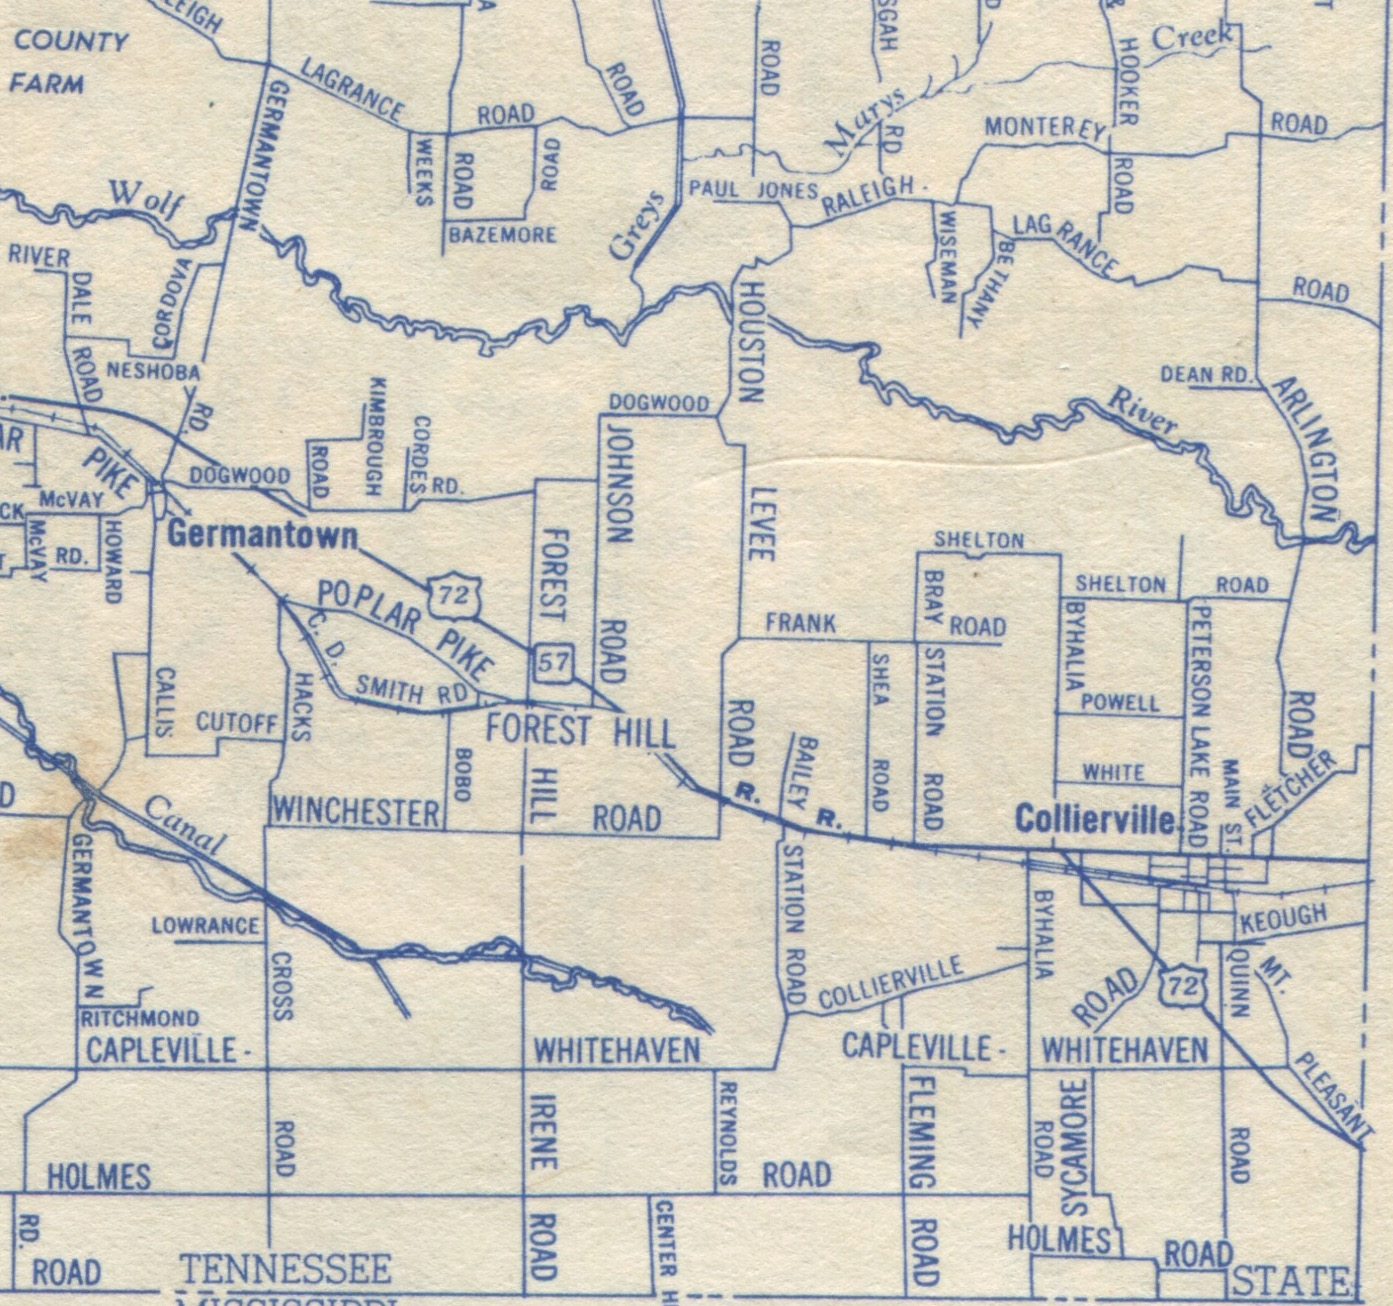 map no 5 riverdale west west farmington and byhalia new byhalia this 1958 j foster ashburn map of germantown and collierville show the three